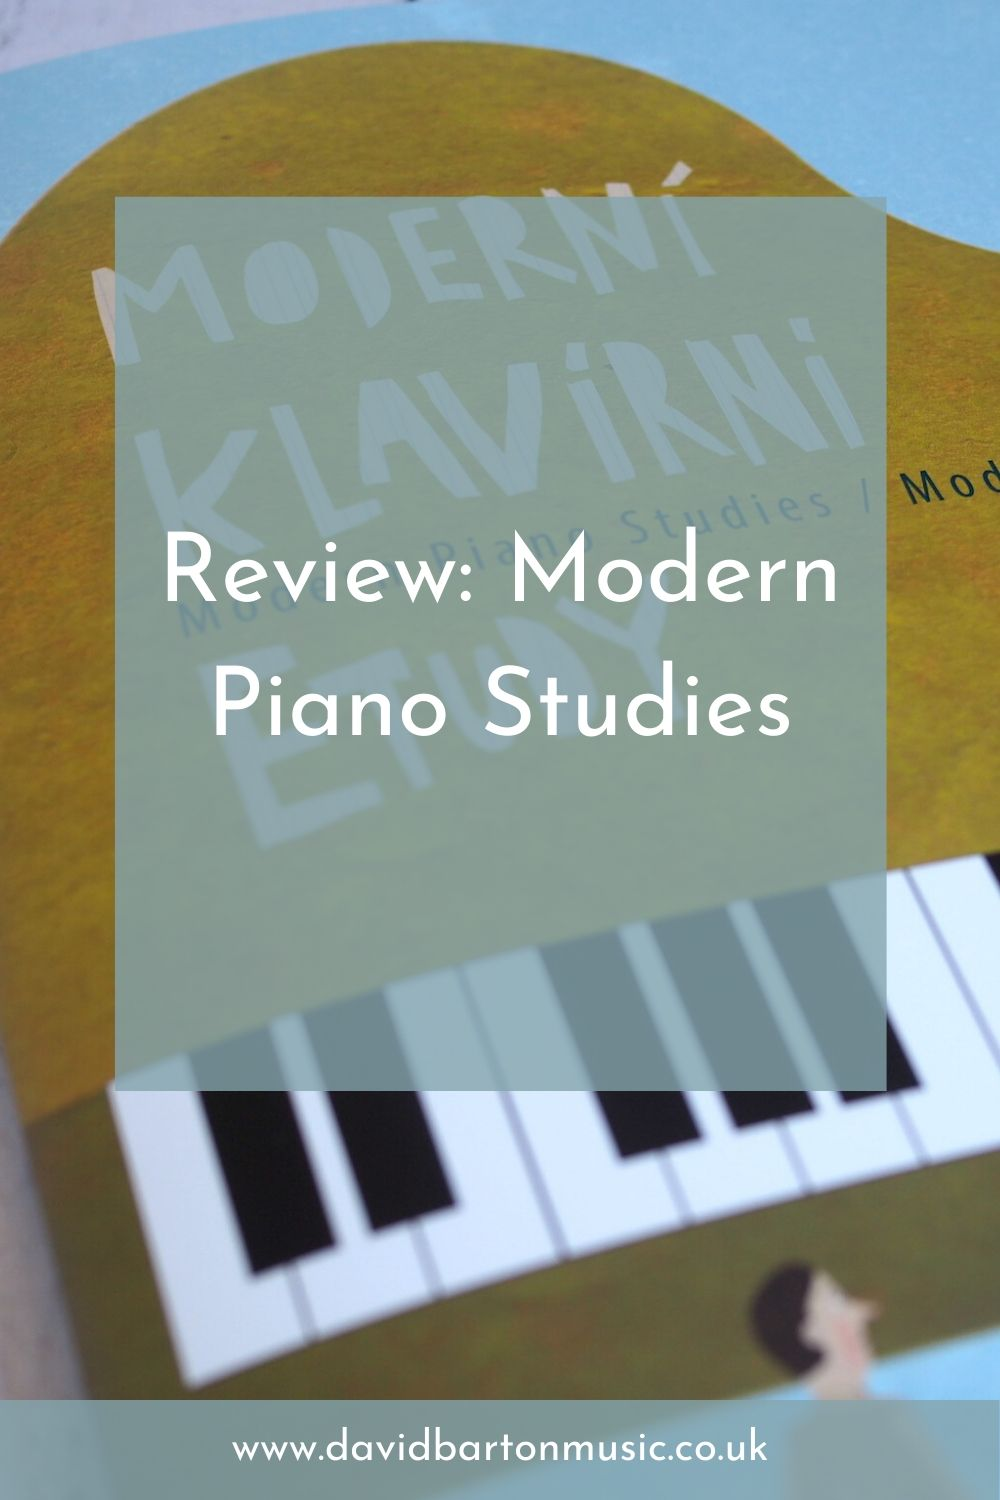 Review: Modern Piano Studies - Pinterest Graphic